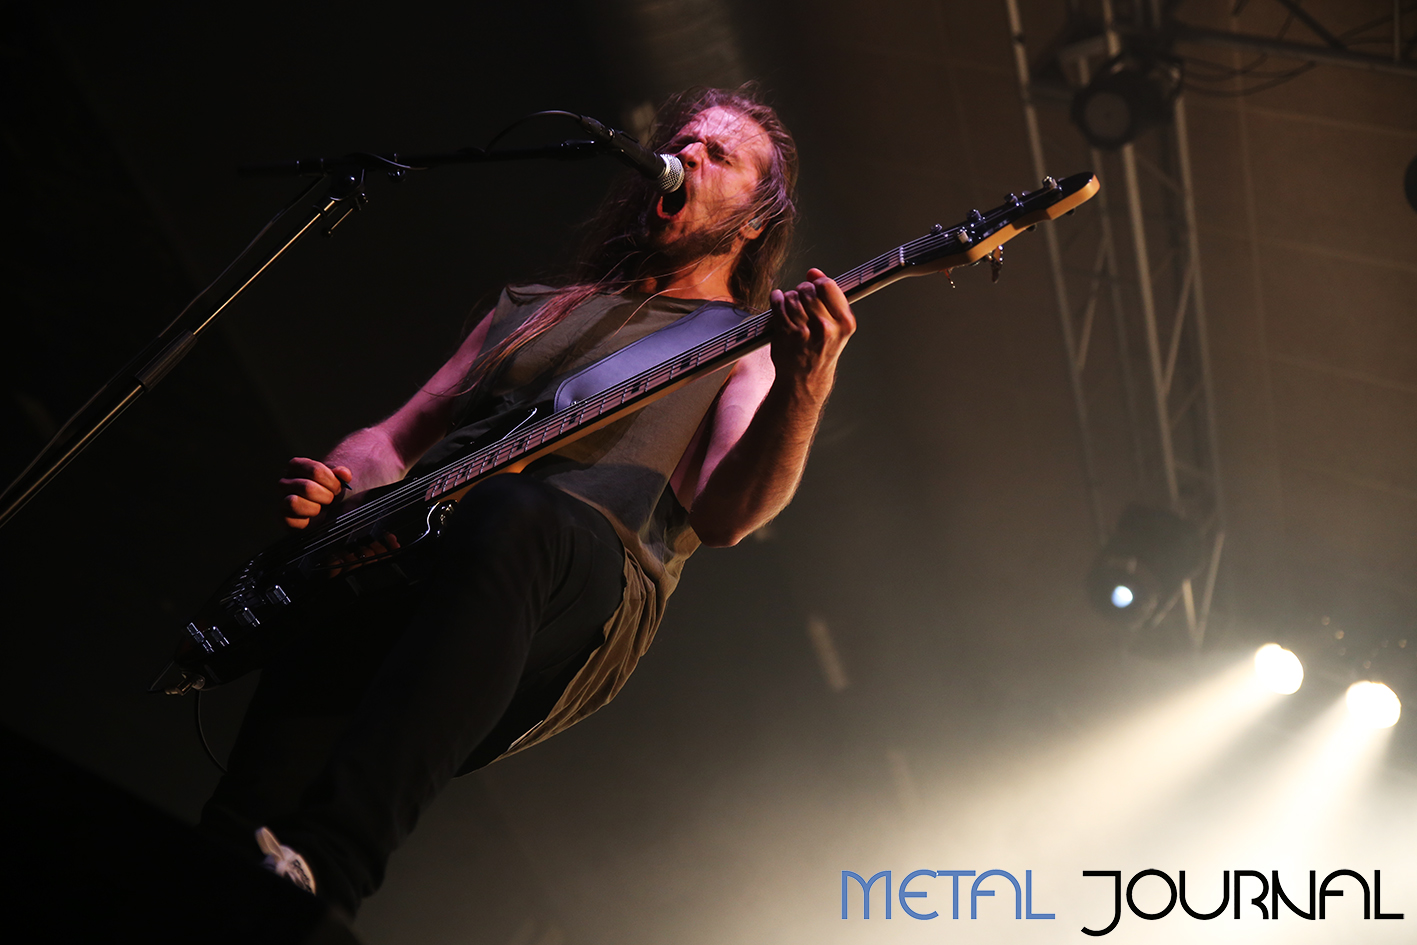 arion metal journal bilbao 2019 pic 5